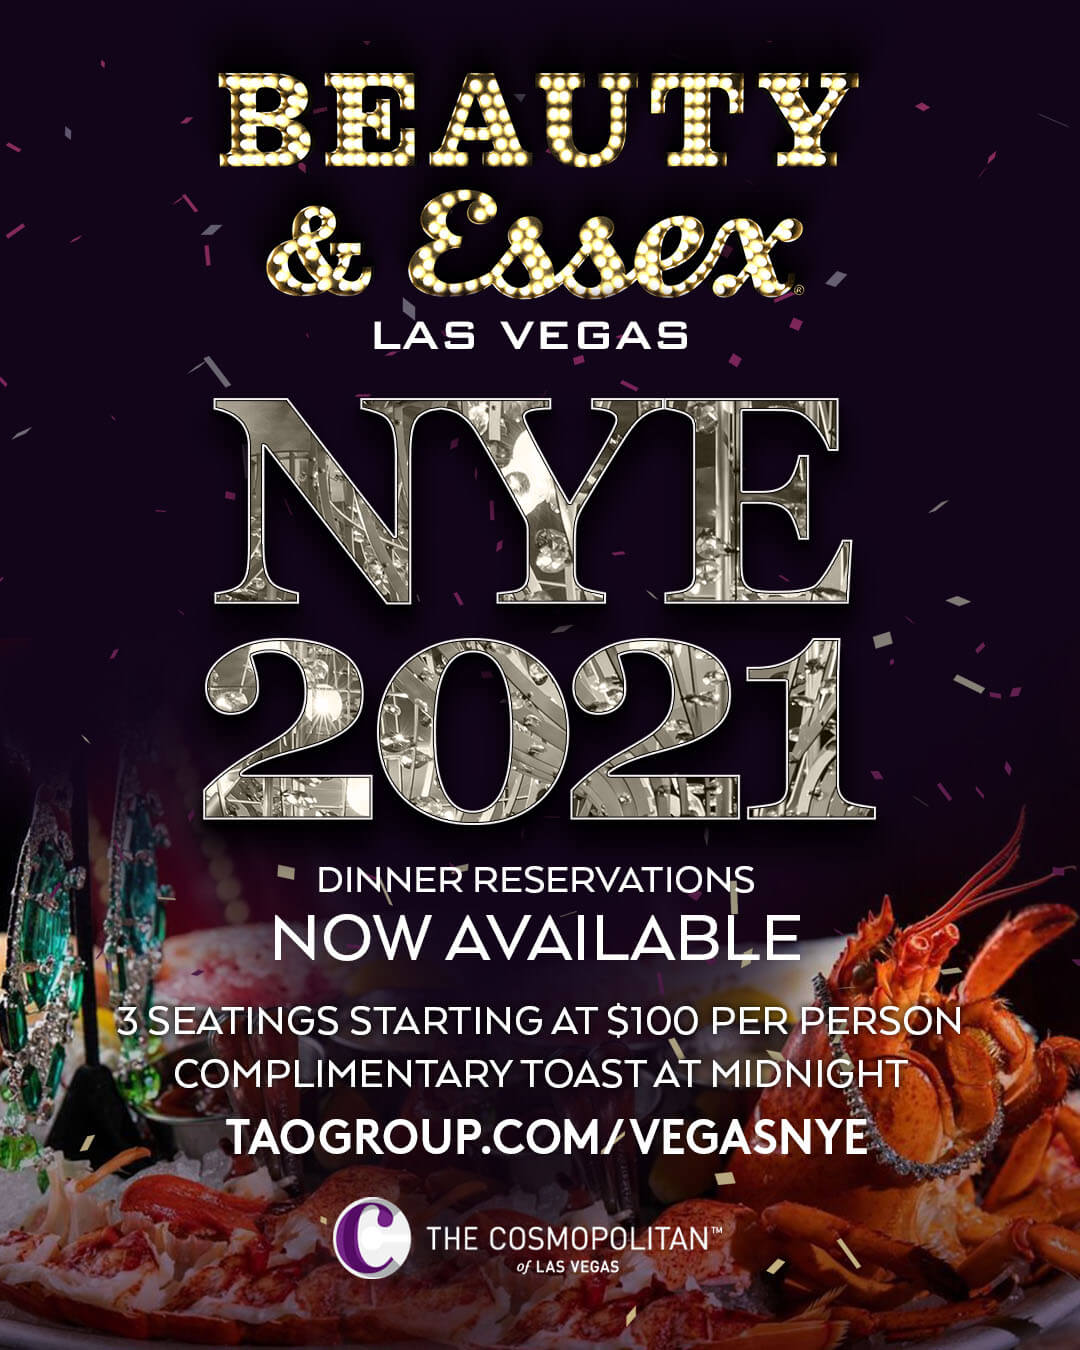 Las Vegas New Year's Eve | Tao Group Hospitality